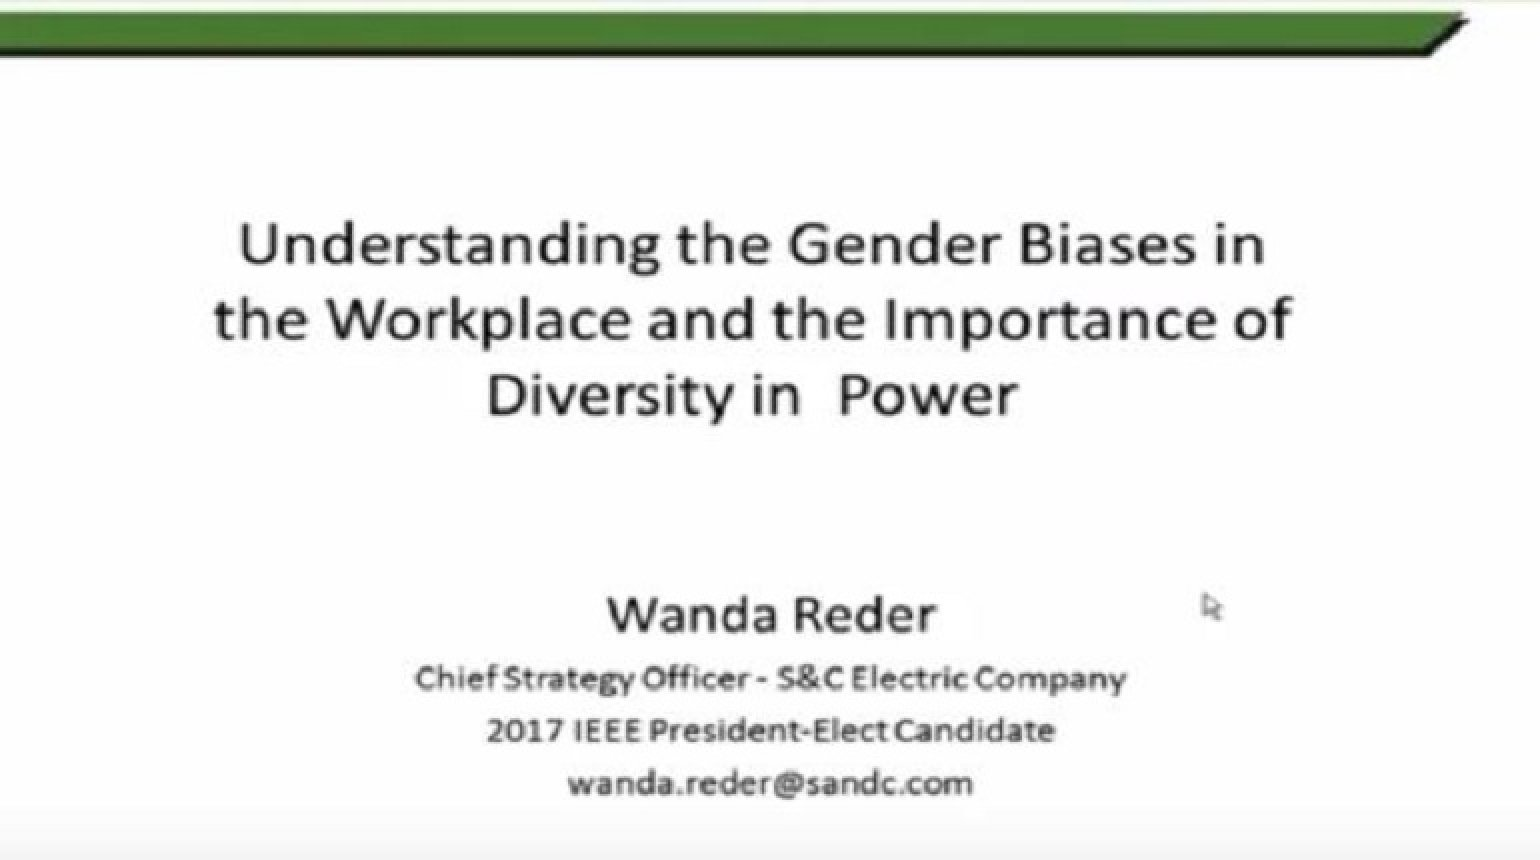 Understanding the Gender Biases in the Workplace and the Importance of Diversity in Power